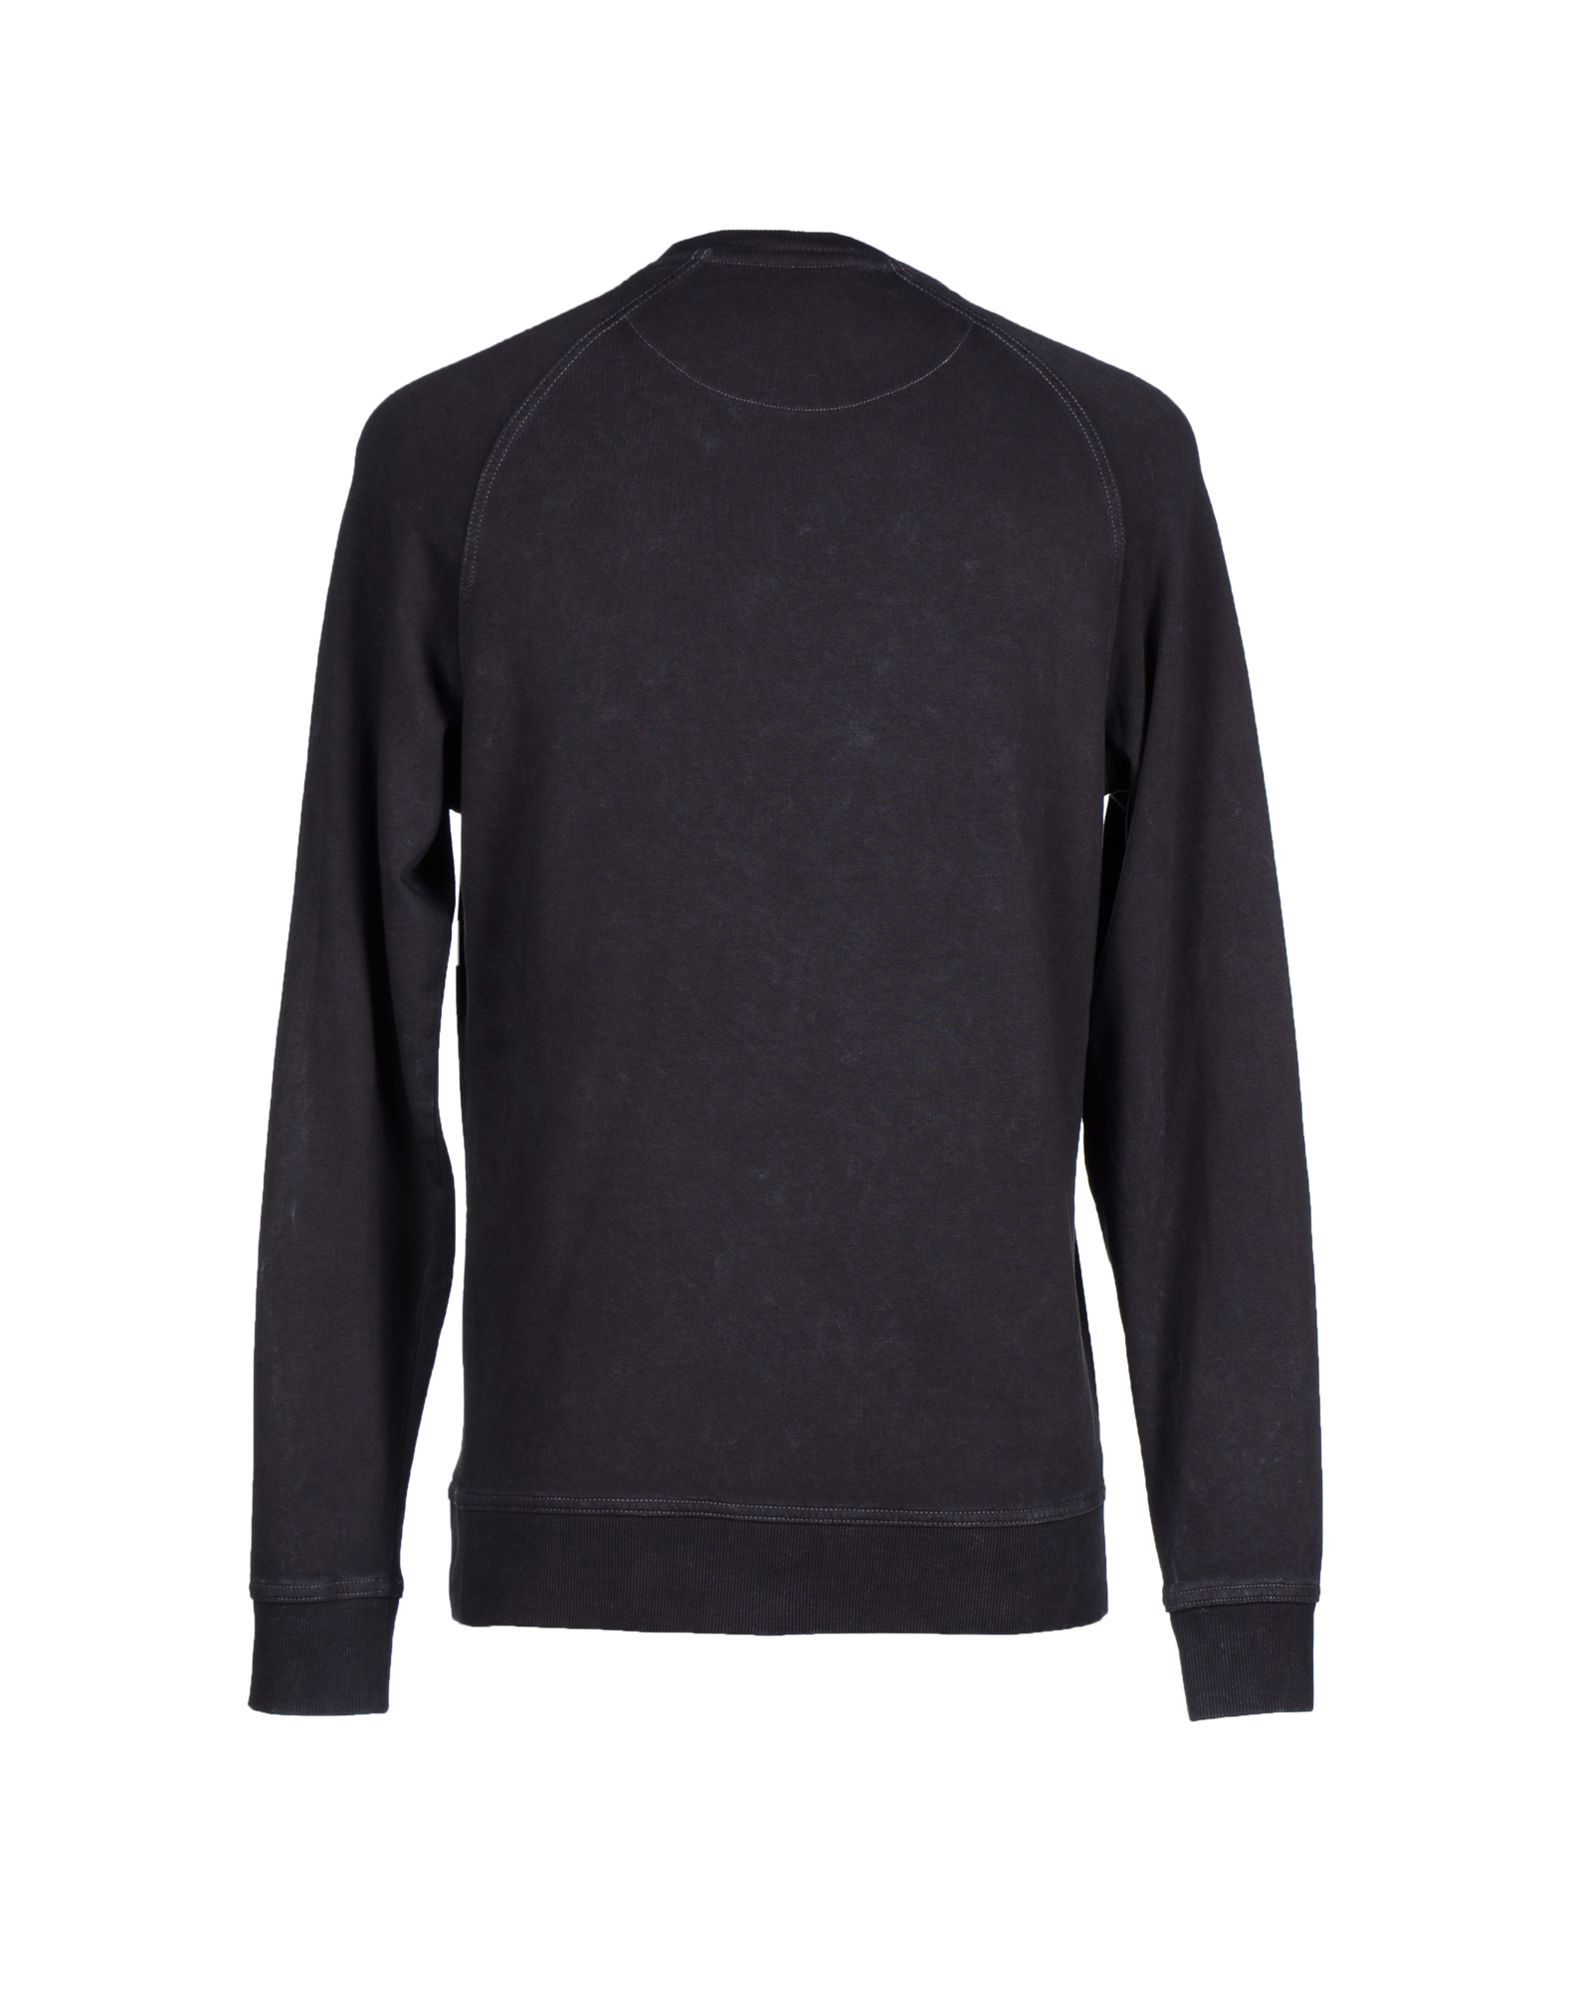 lyst originals by jack jones sweatshirt in gray for men. Black Bedroom Furniture Sets. Home Design Ideas